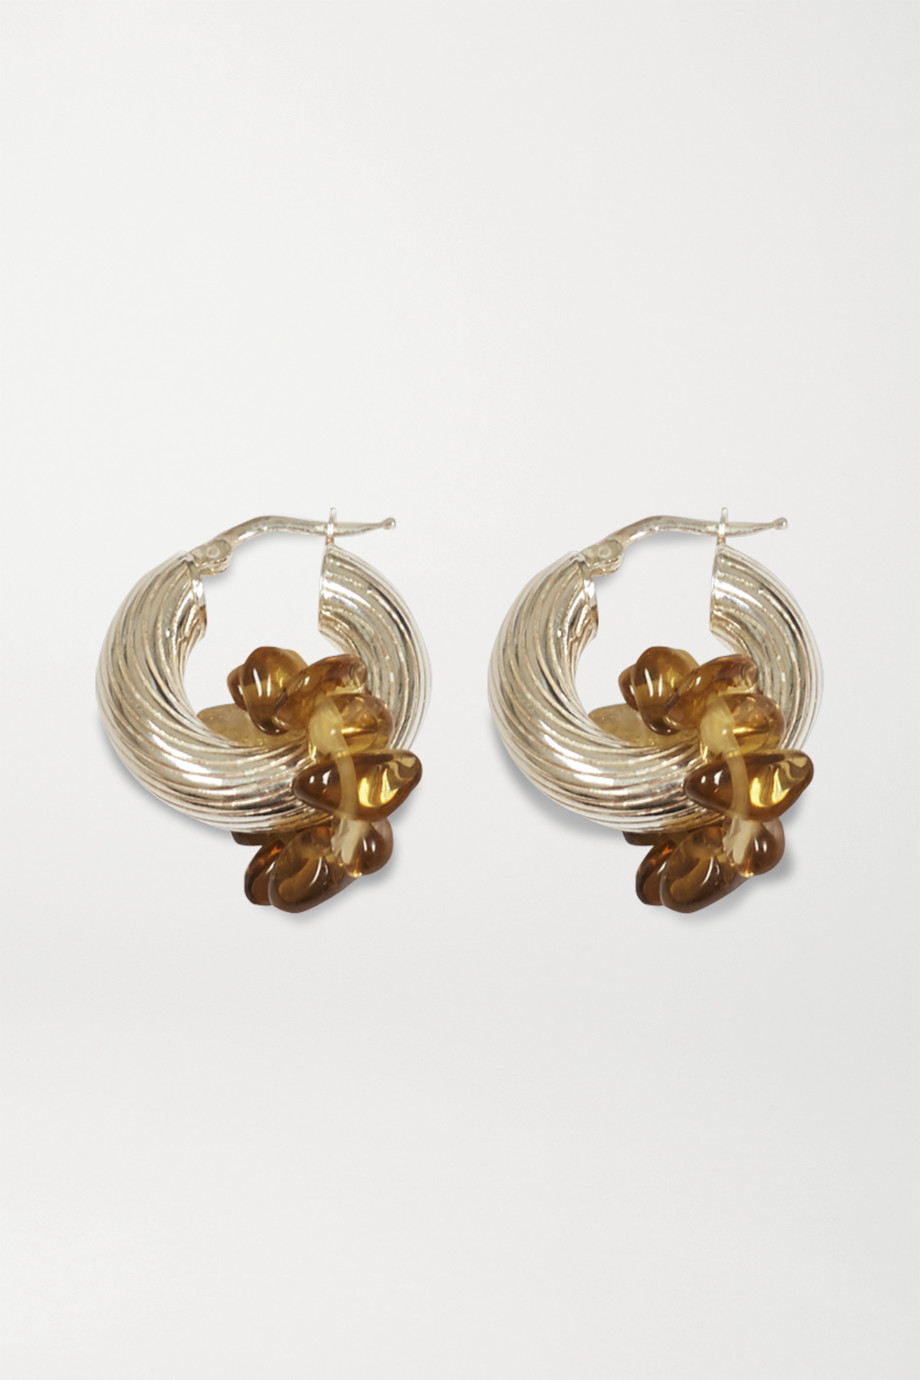 Santangelo Zuma silver quartz hoop earrings